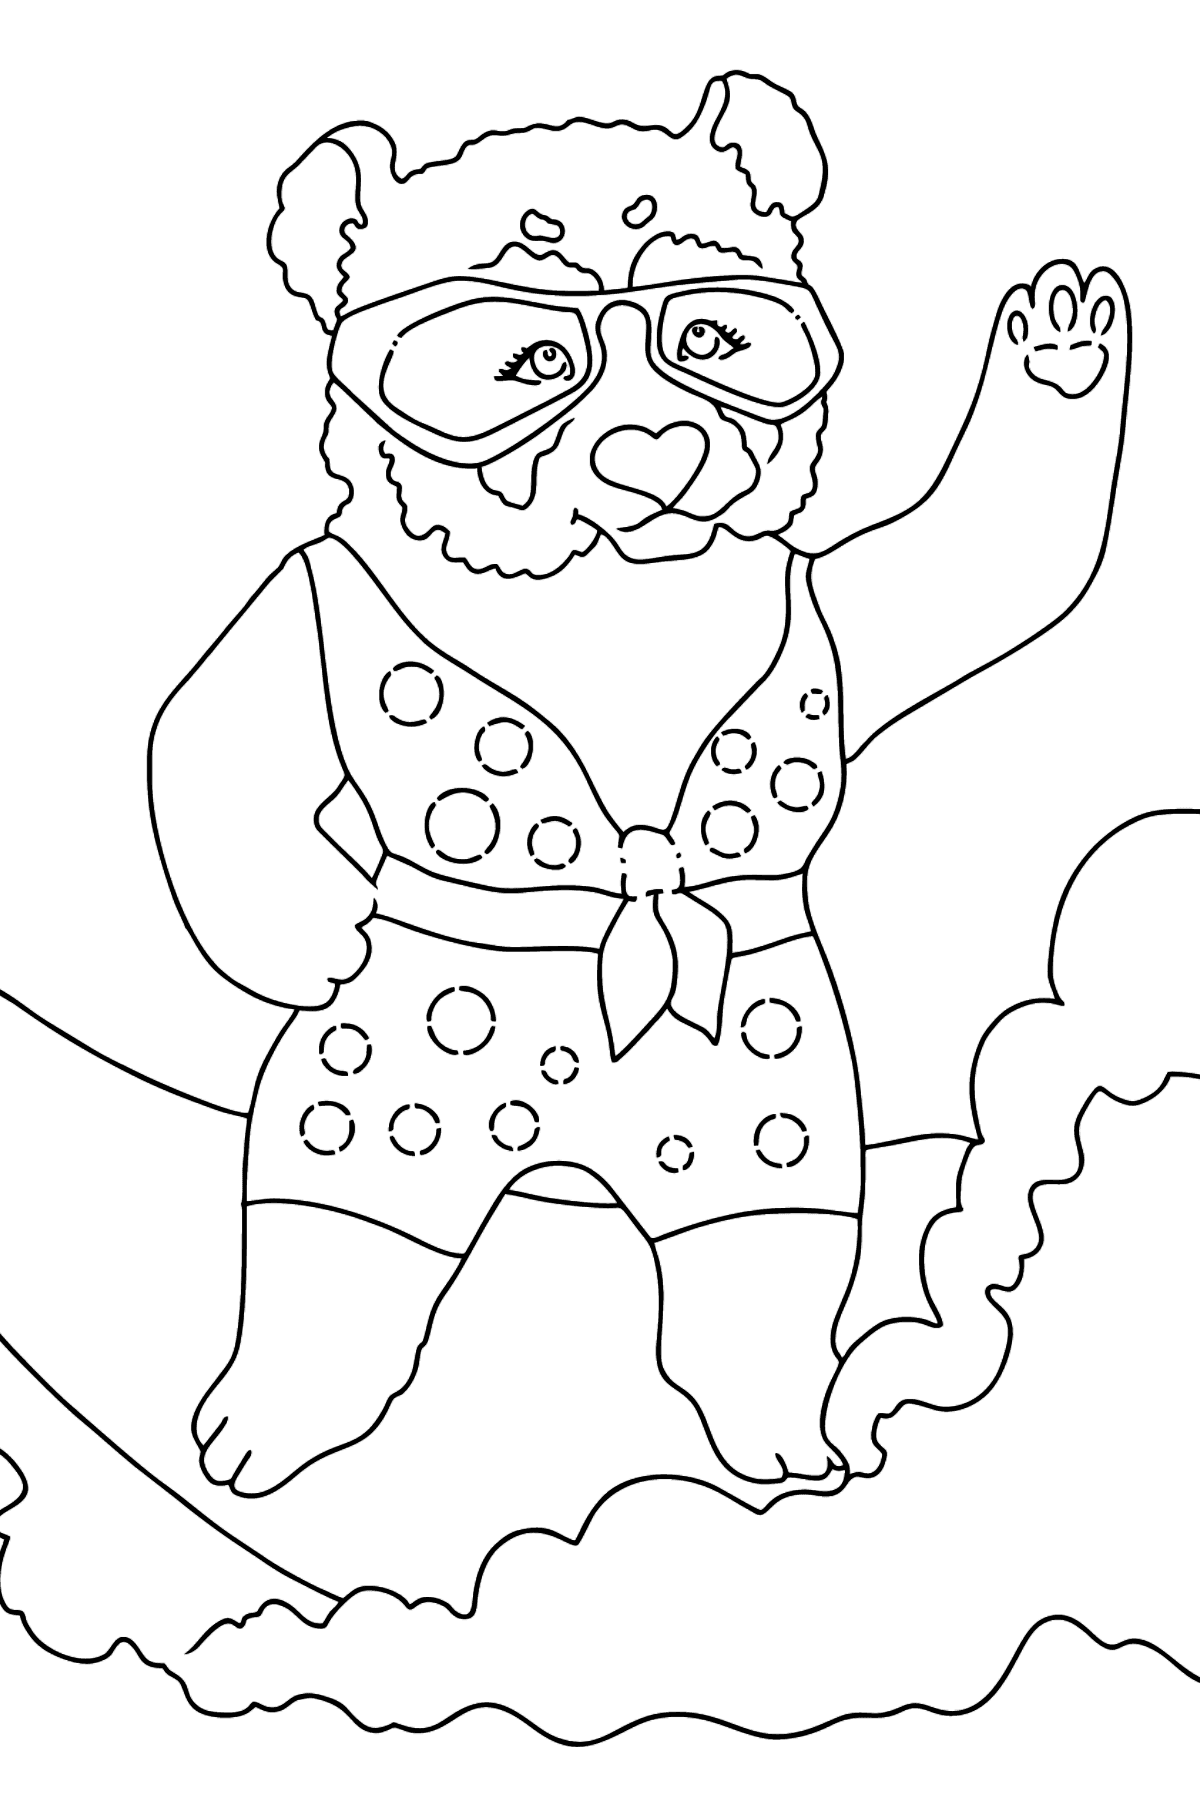 Coloring Page - A Panda with a Surfboard - Coloring Pages for Kids